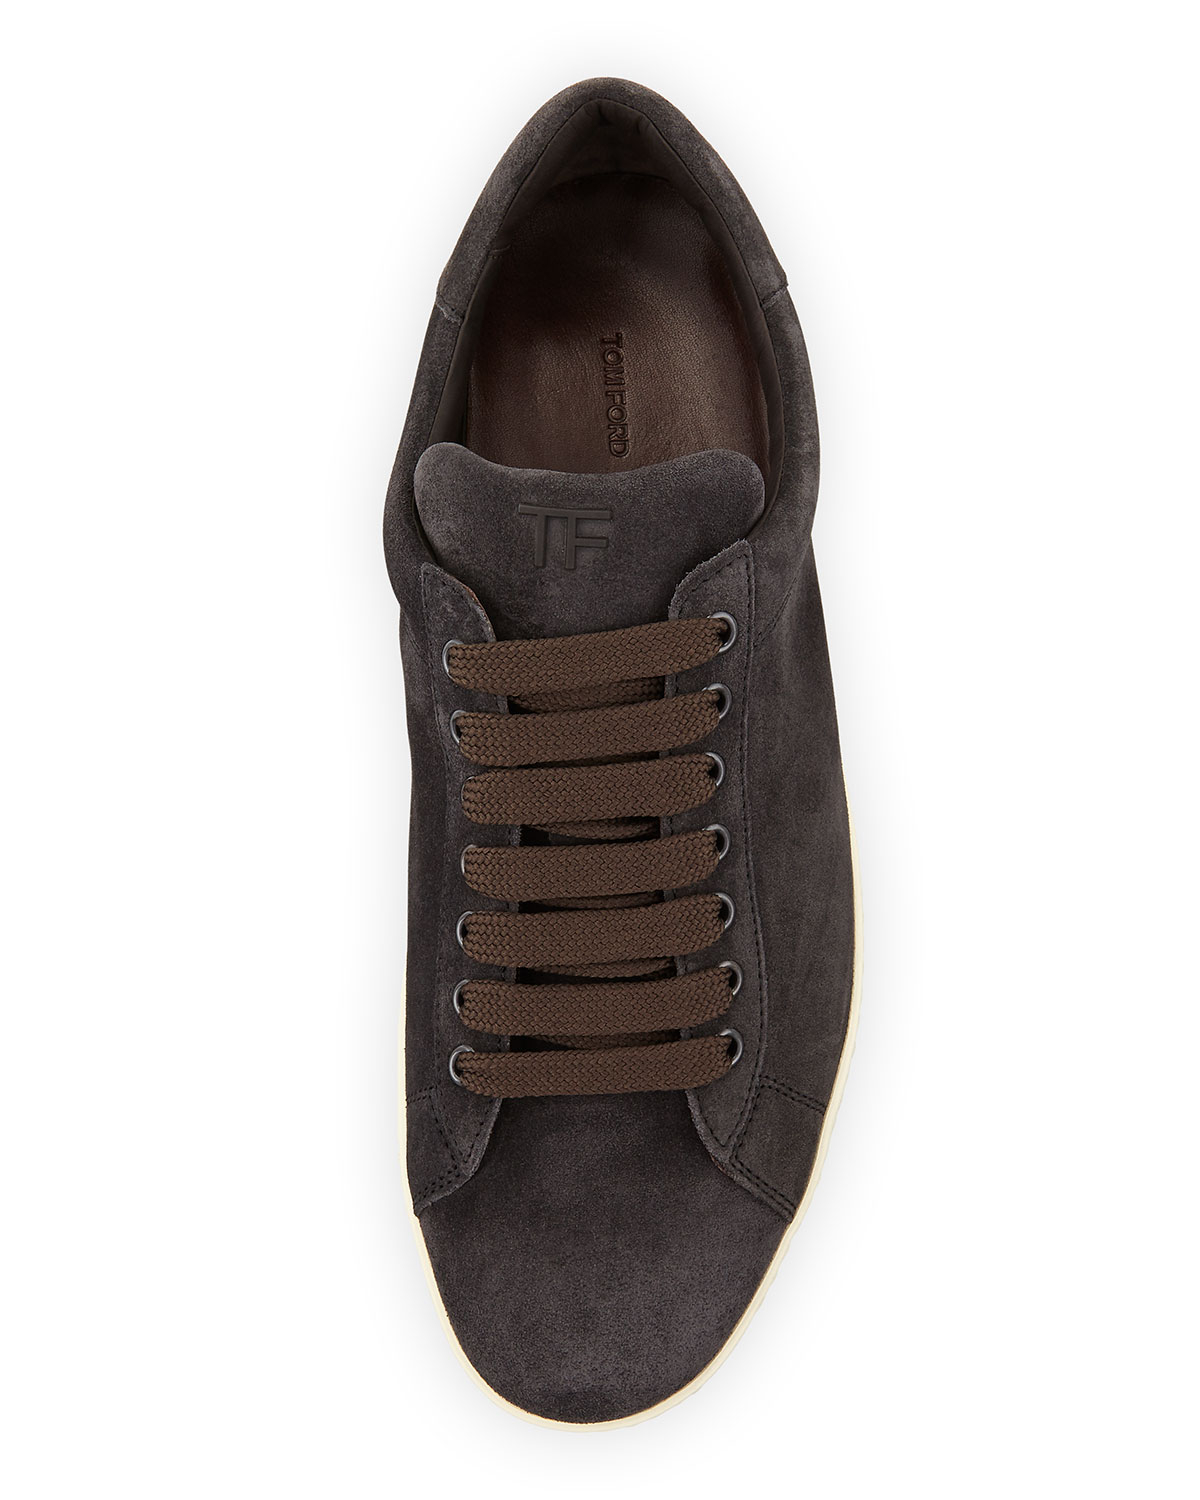 Sneaker suede grey Tom Ford Discount Sale Online Fake Cheap Online Discount Websites New Arrival Online Cheap Sale Fast Delivery PN5BFW45U